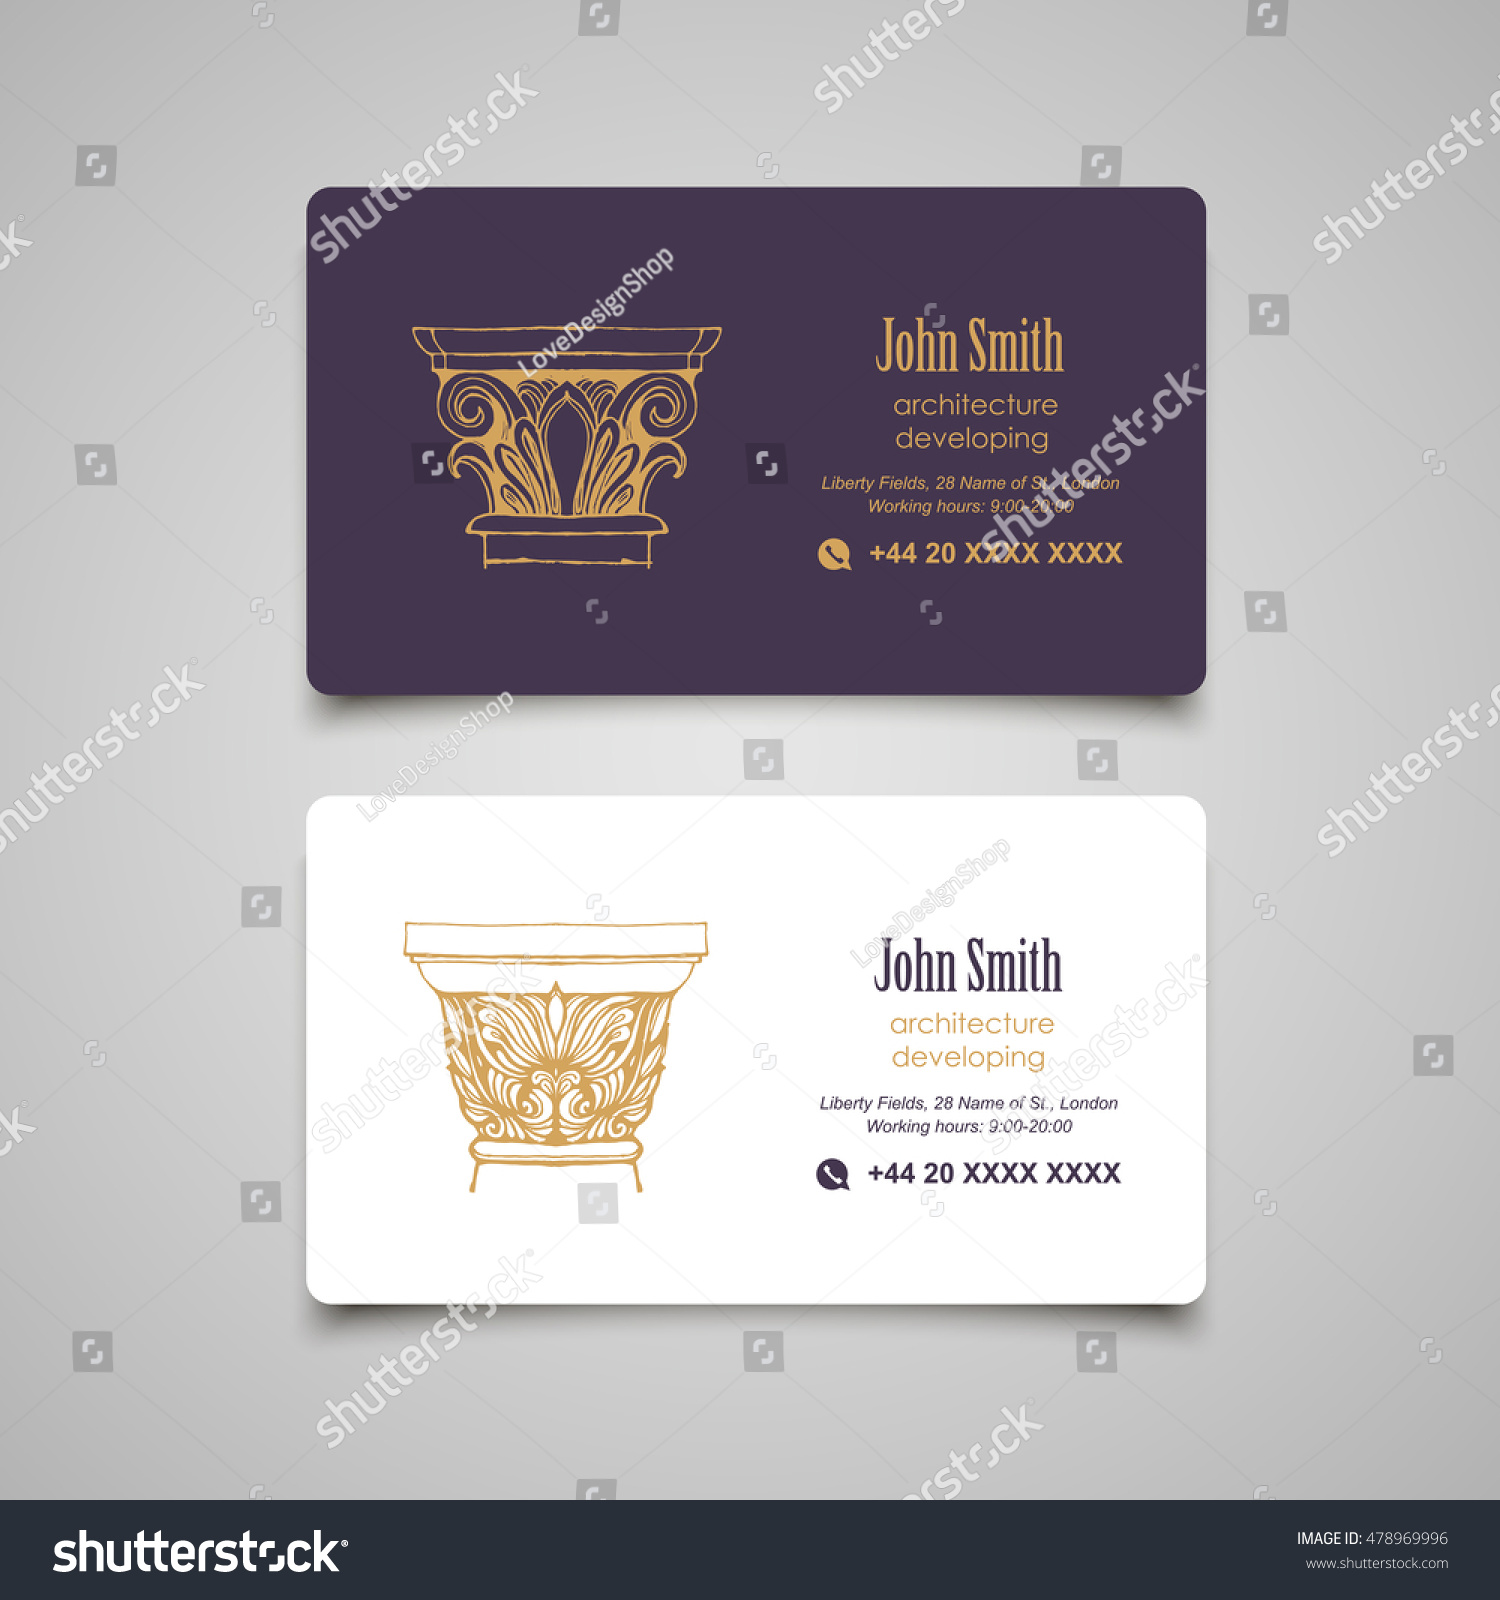 Architectural Business Card Templates Set Vector Stock Vector ...